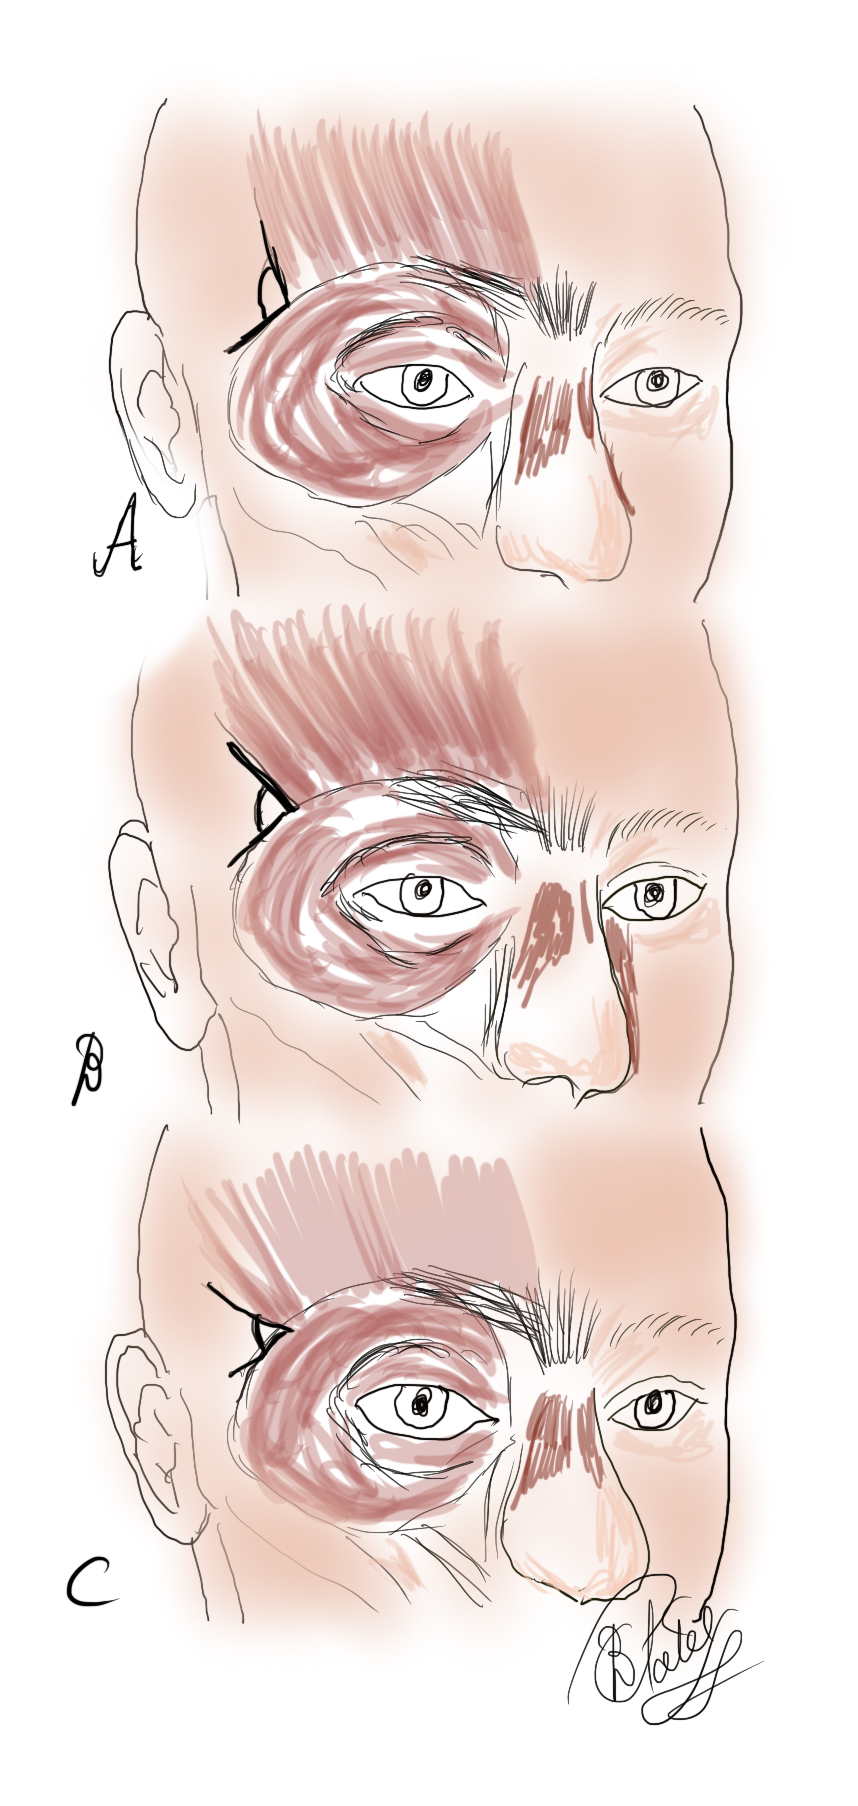 The Frontalis Muscle: The angle of insertion of the frontalis muscle laterally as measured against the orbital orbicularis oculi varies: